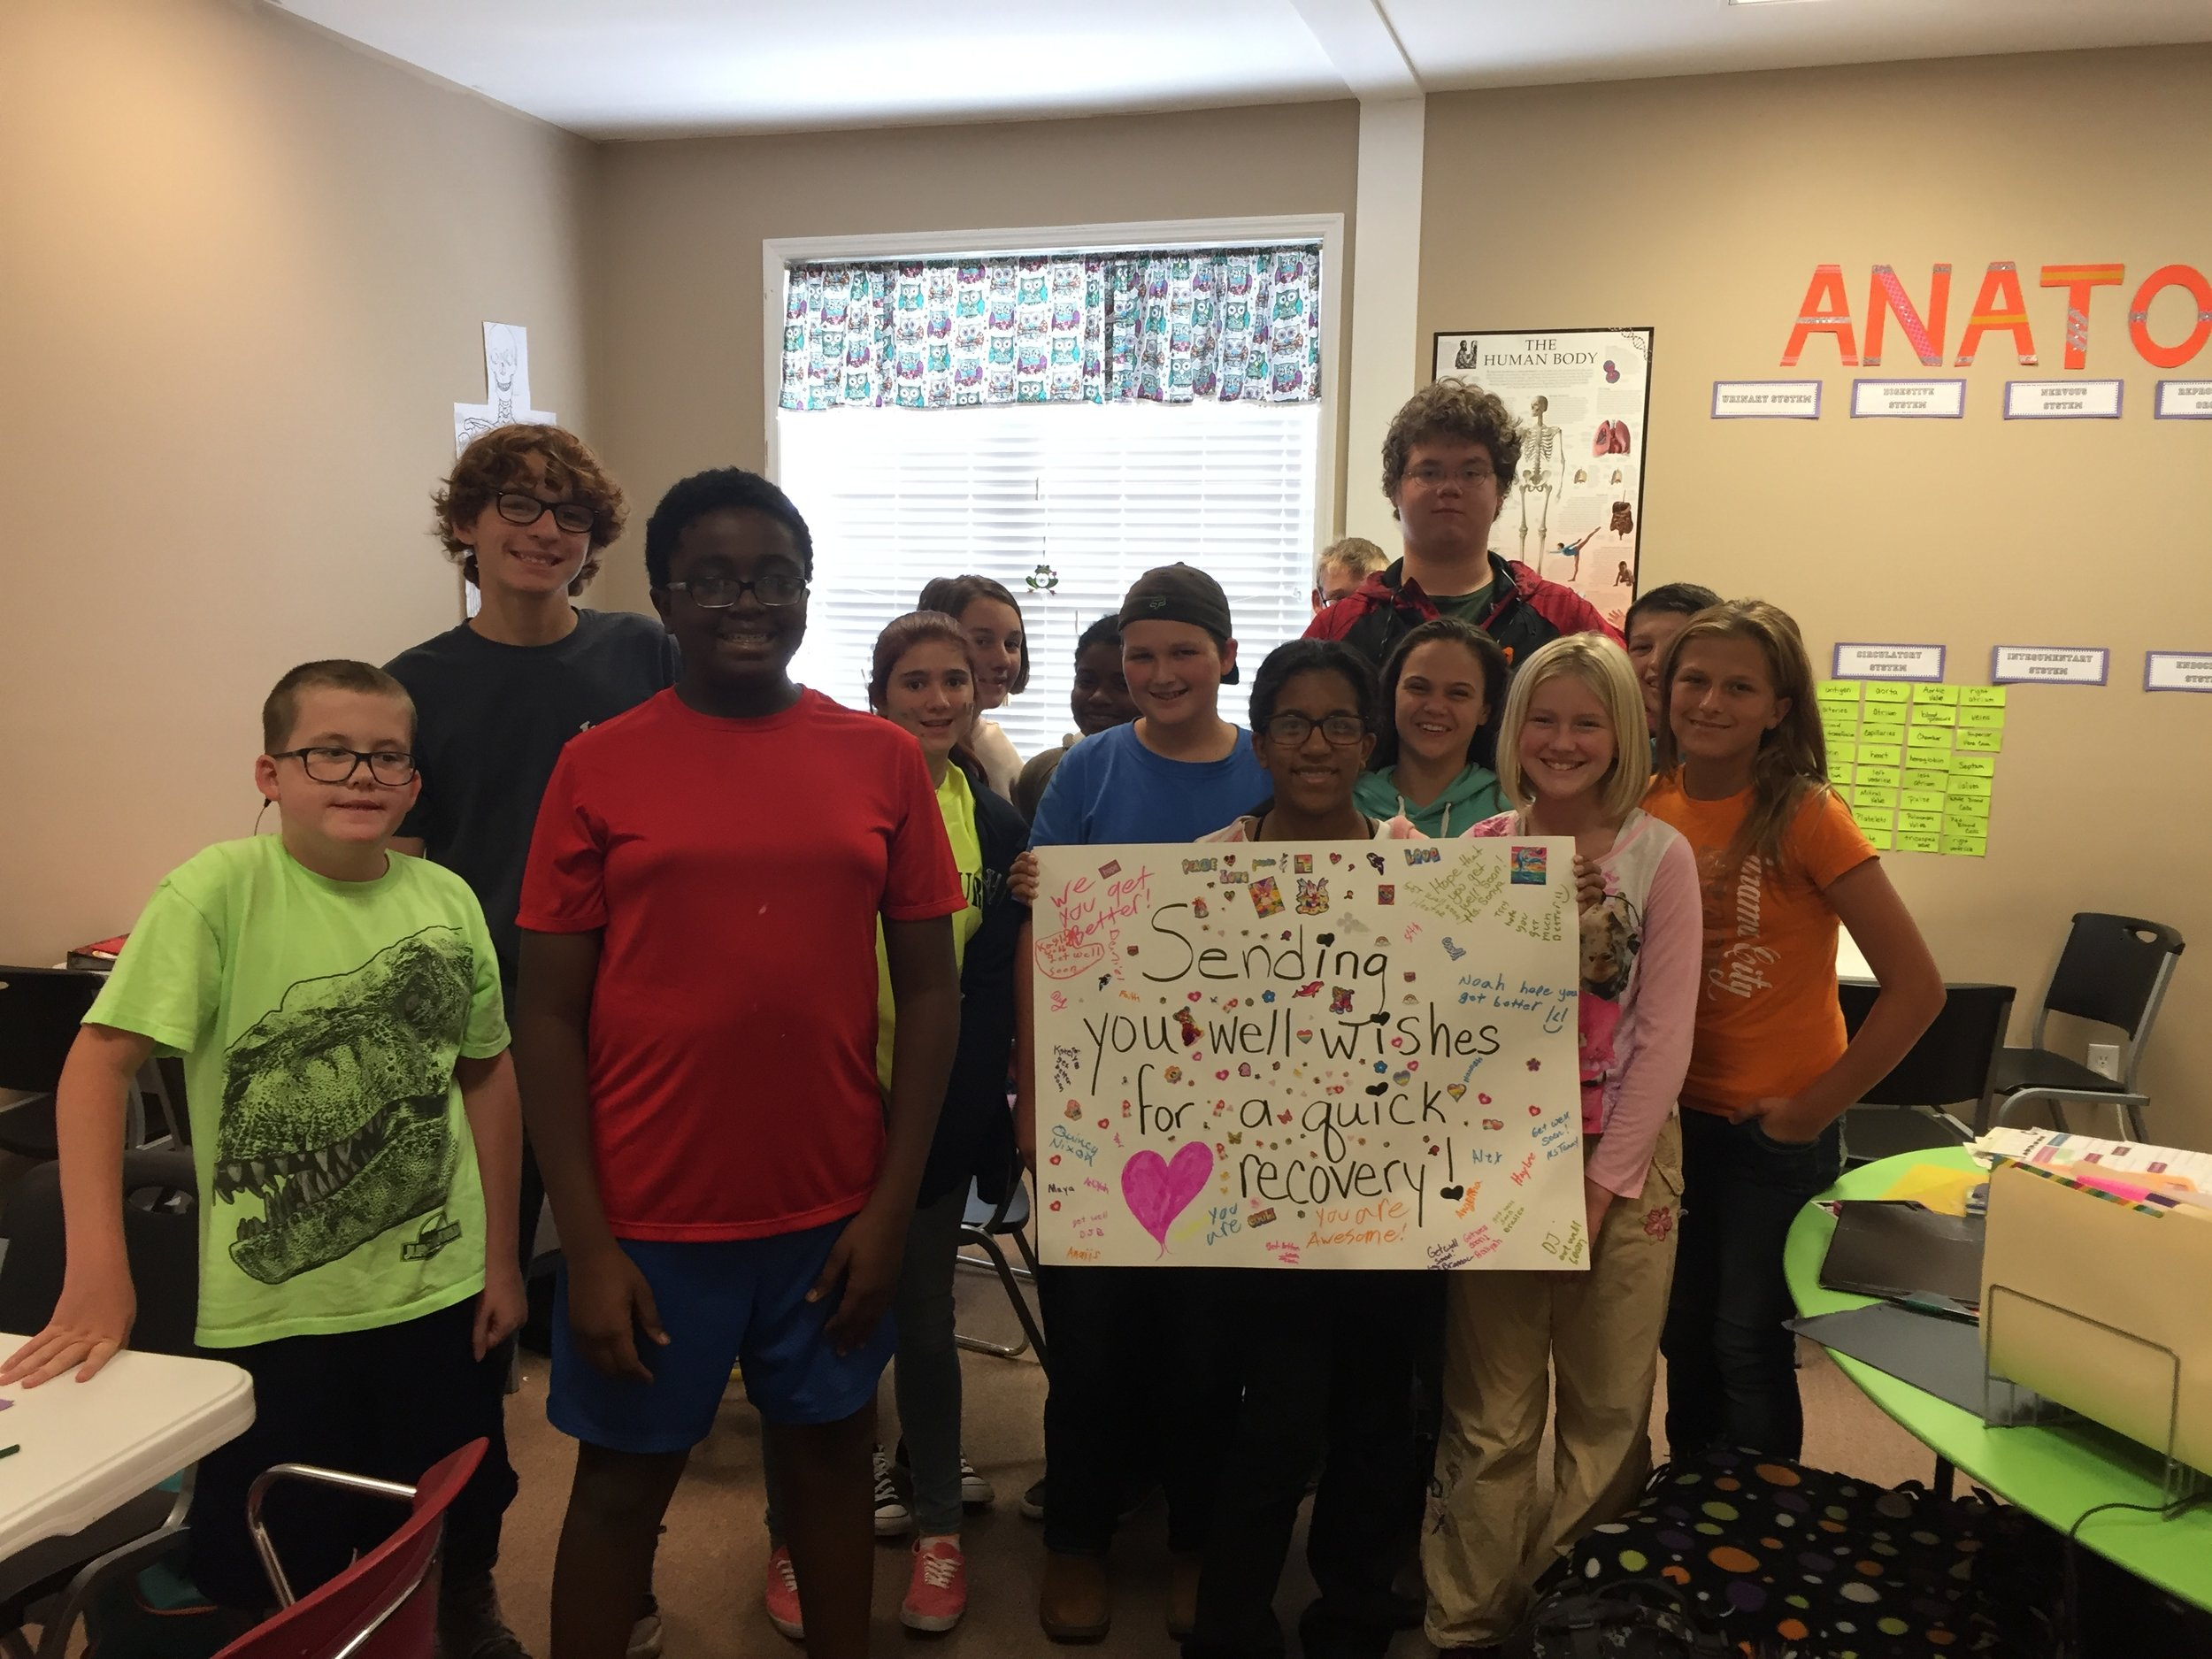 Students made a get well card for the mother of one of their classmate's who had to undergo surgery.